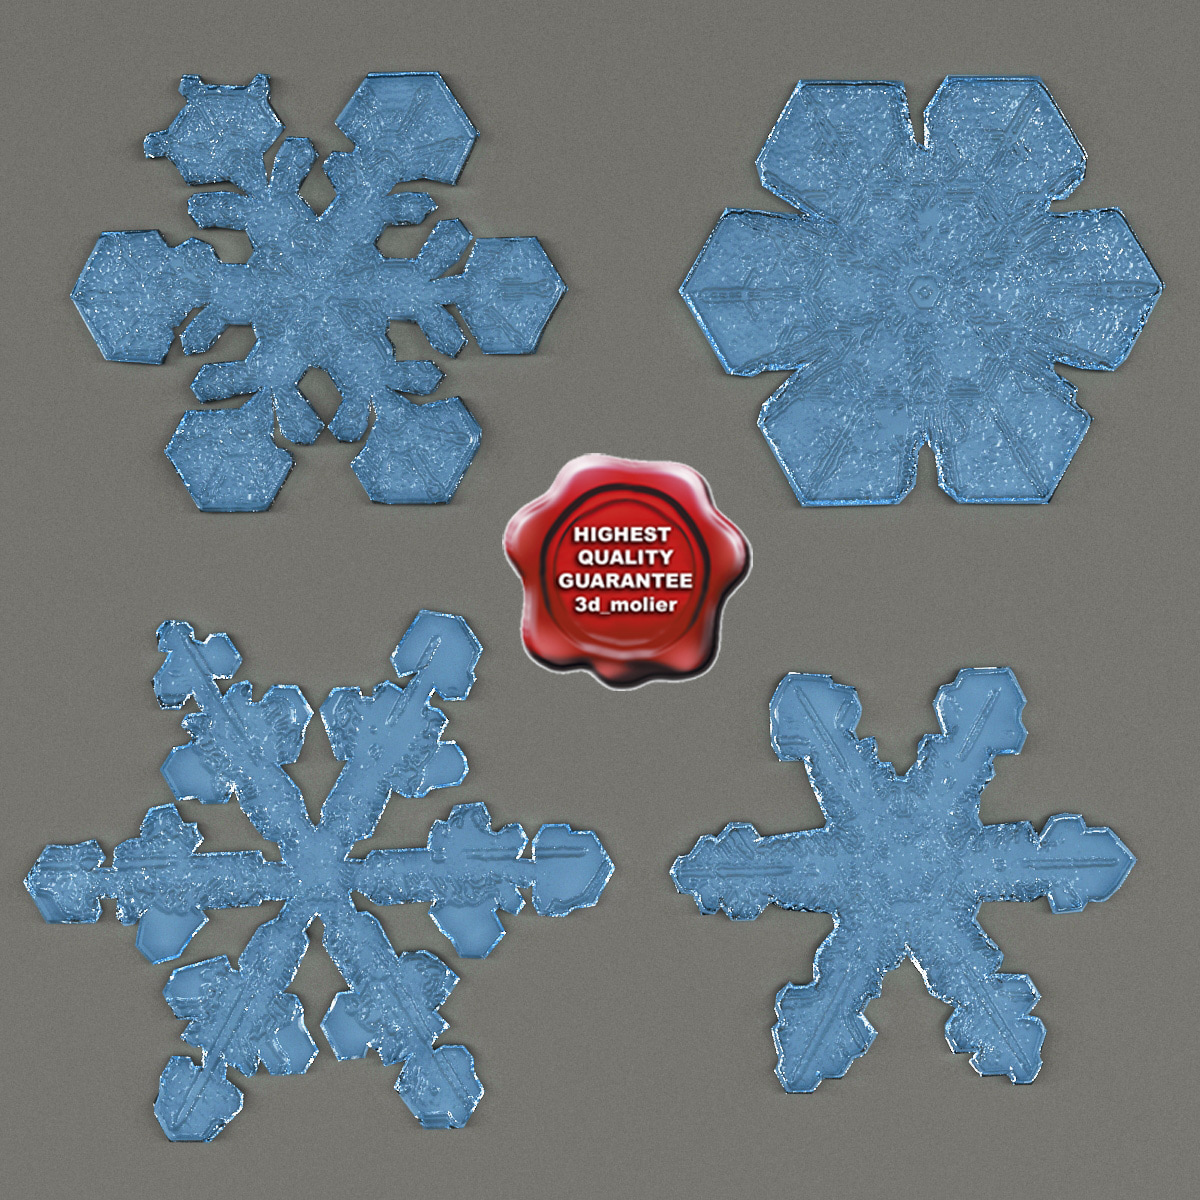 Snowflakes_Collection_V1_00.jpg